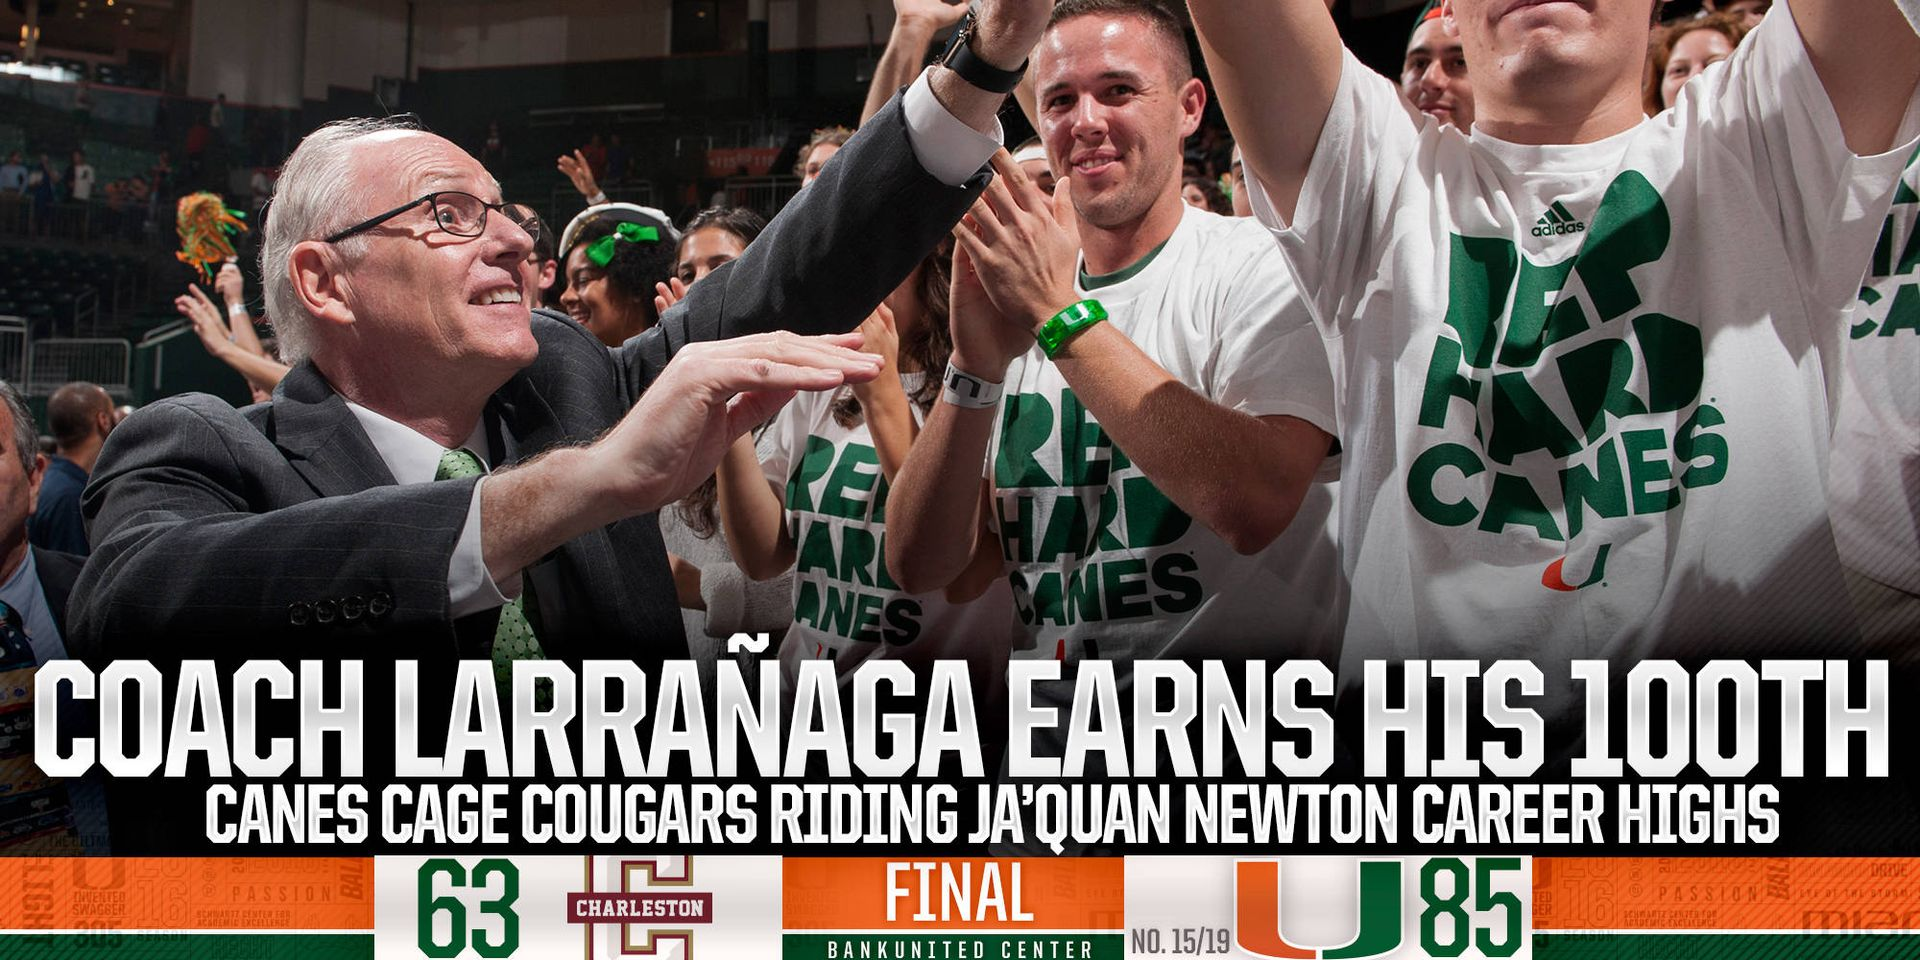 Newton's Career Day Helps Coach L Win #100